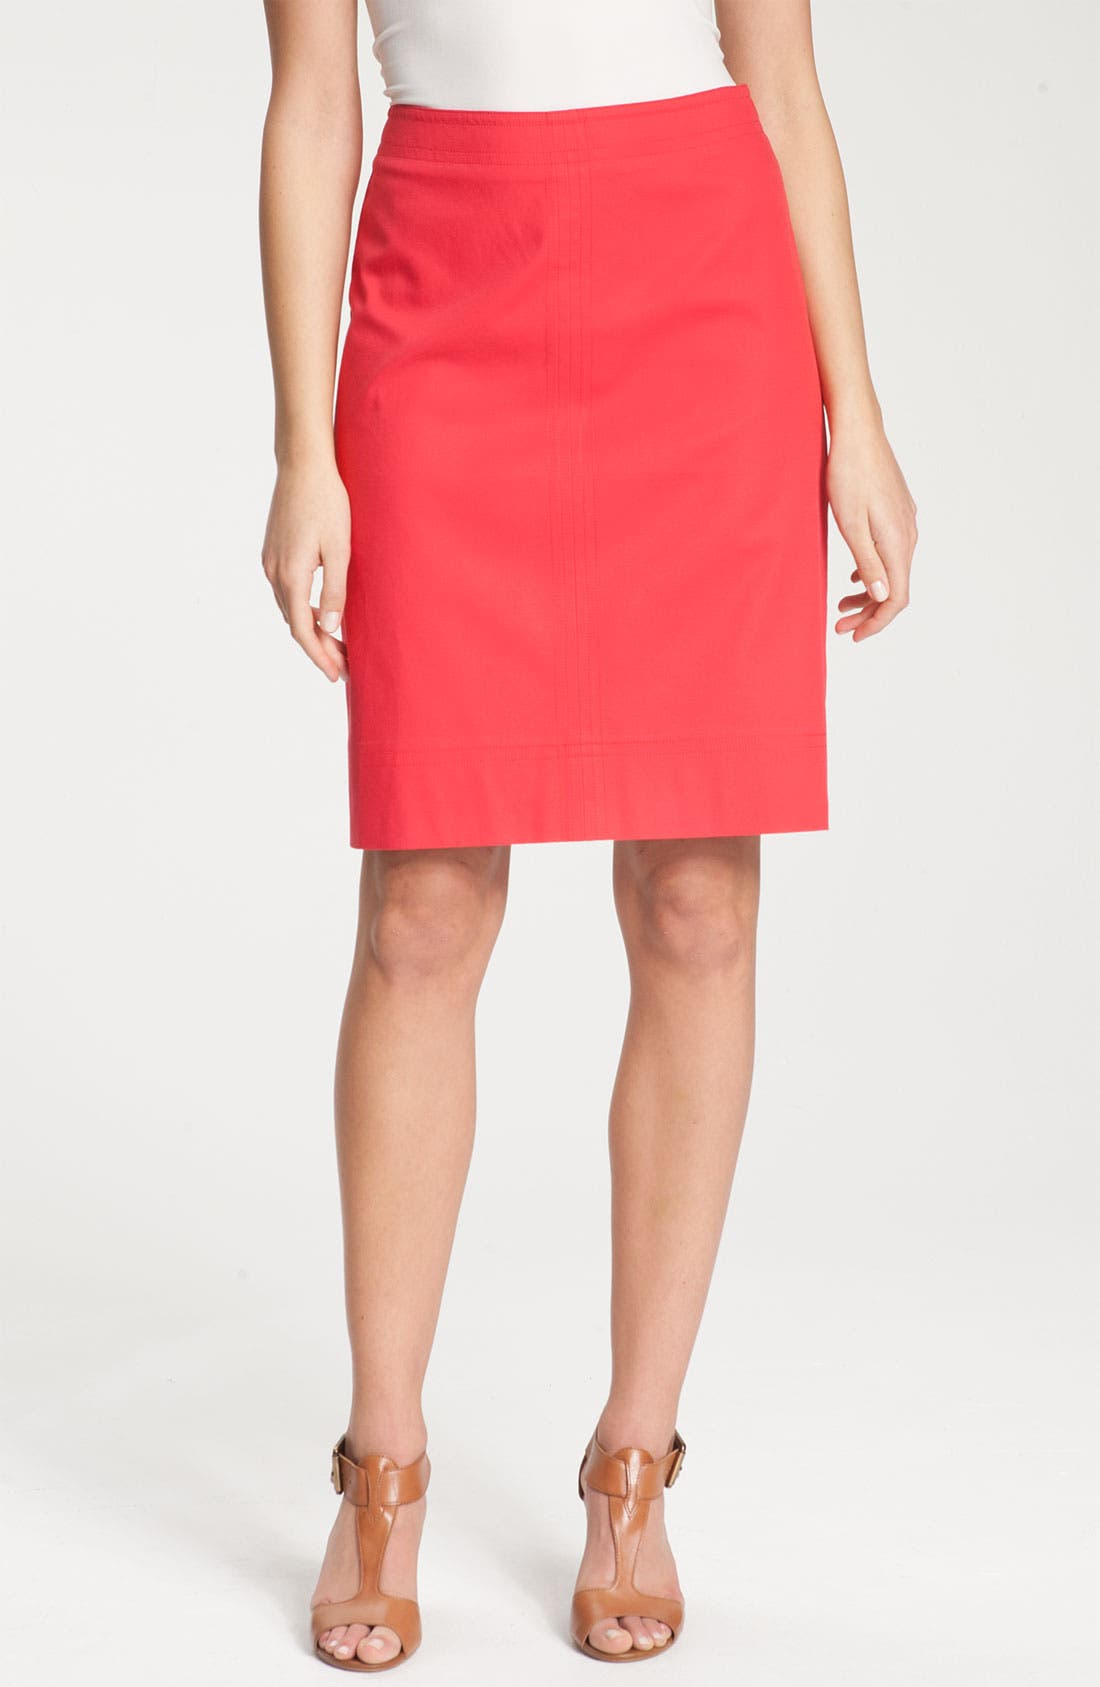 Alternate Image 1 Selected - Nic + Zoe Stretch Twill Skirt